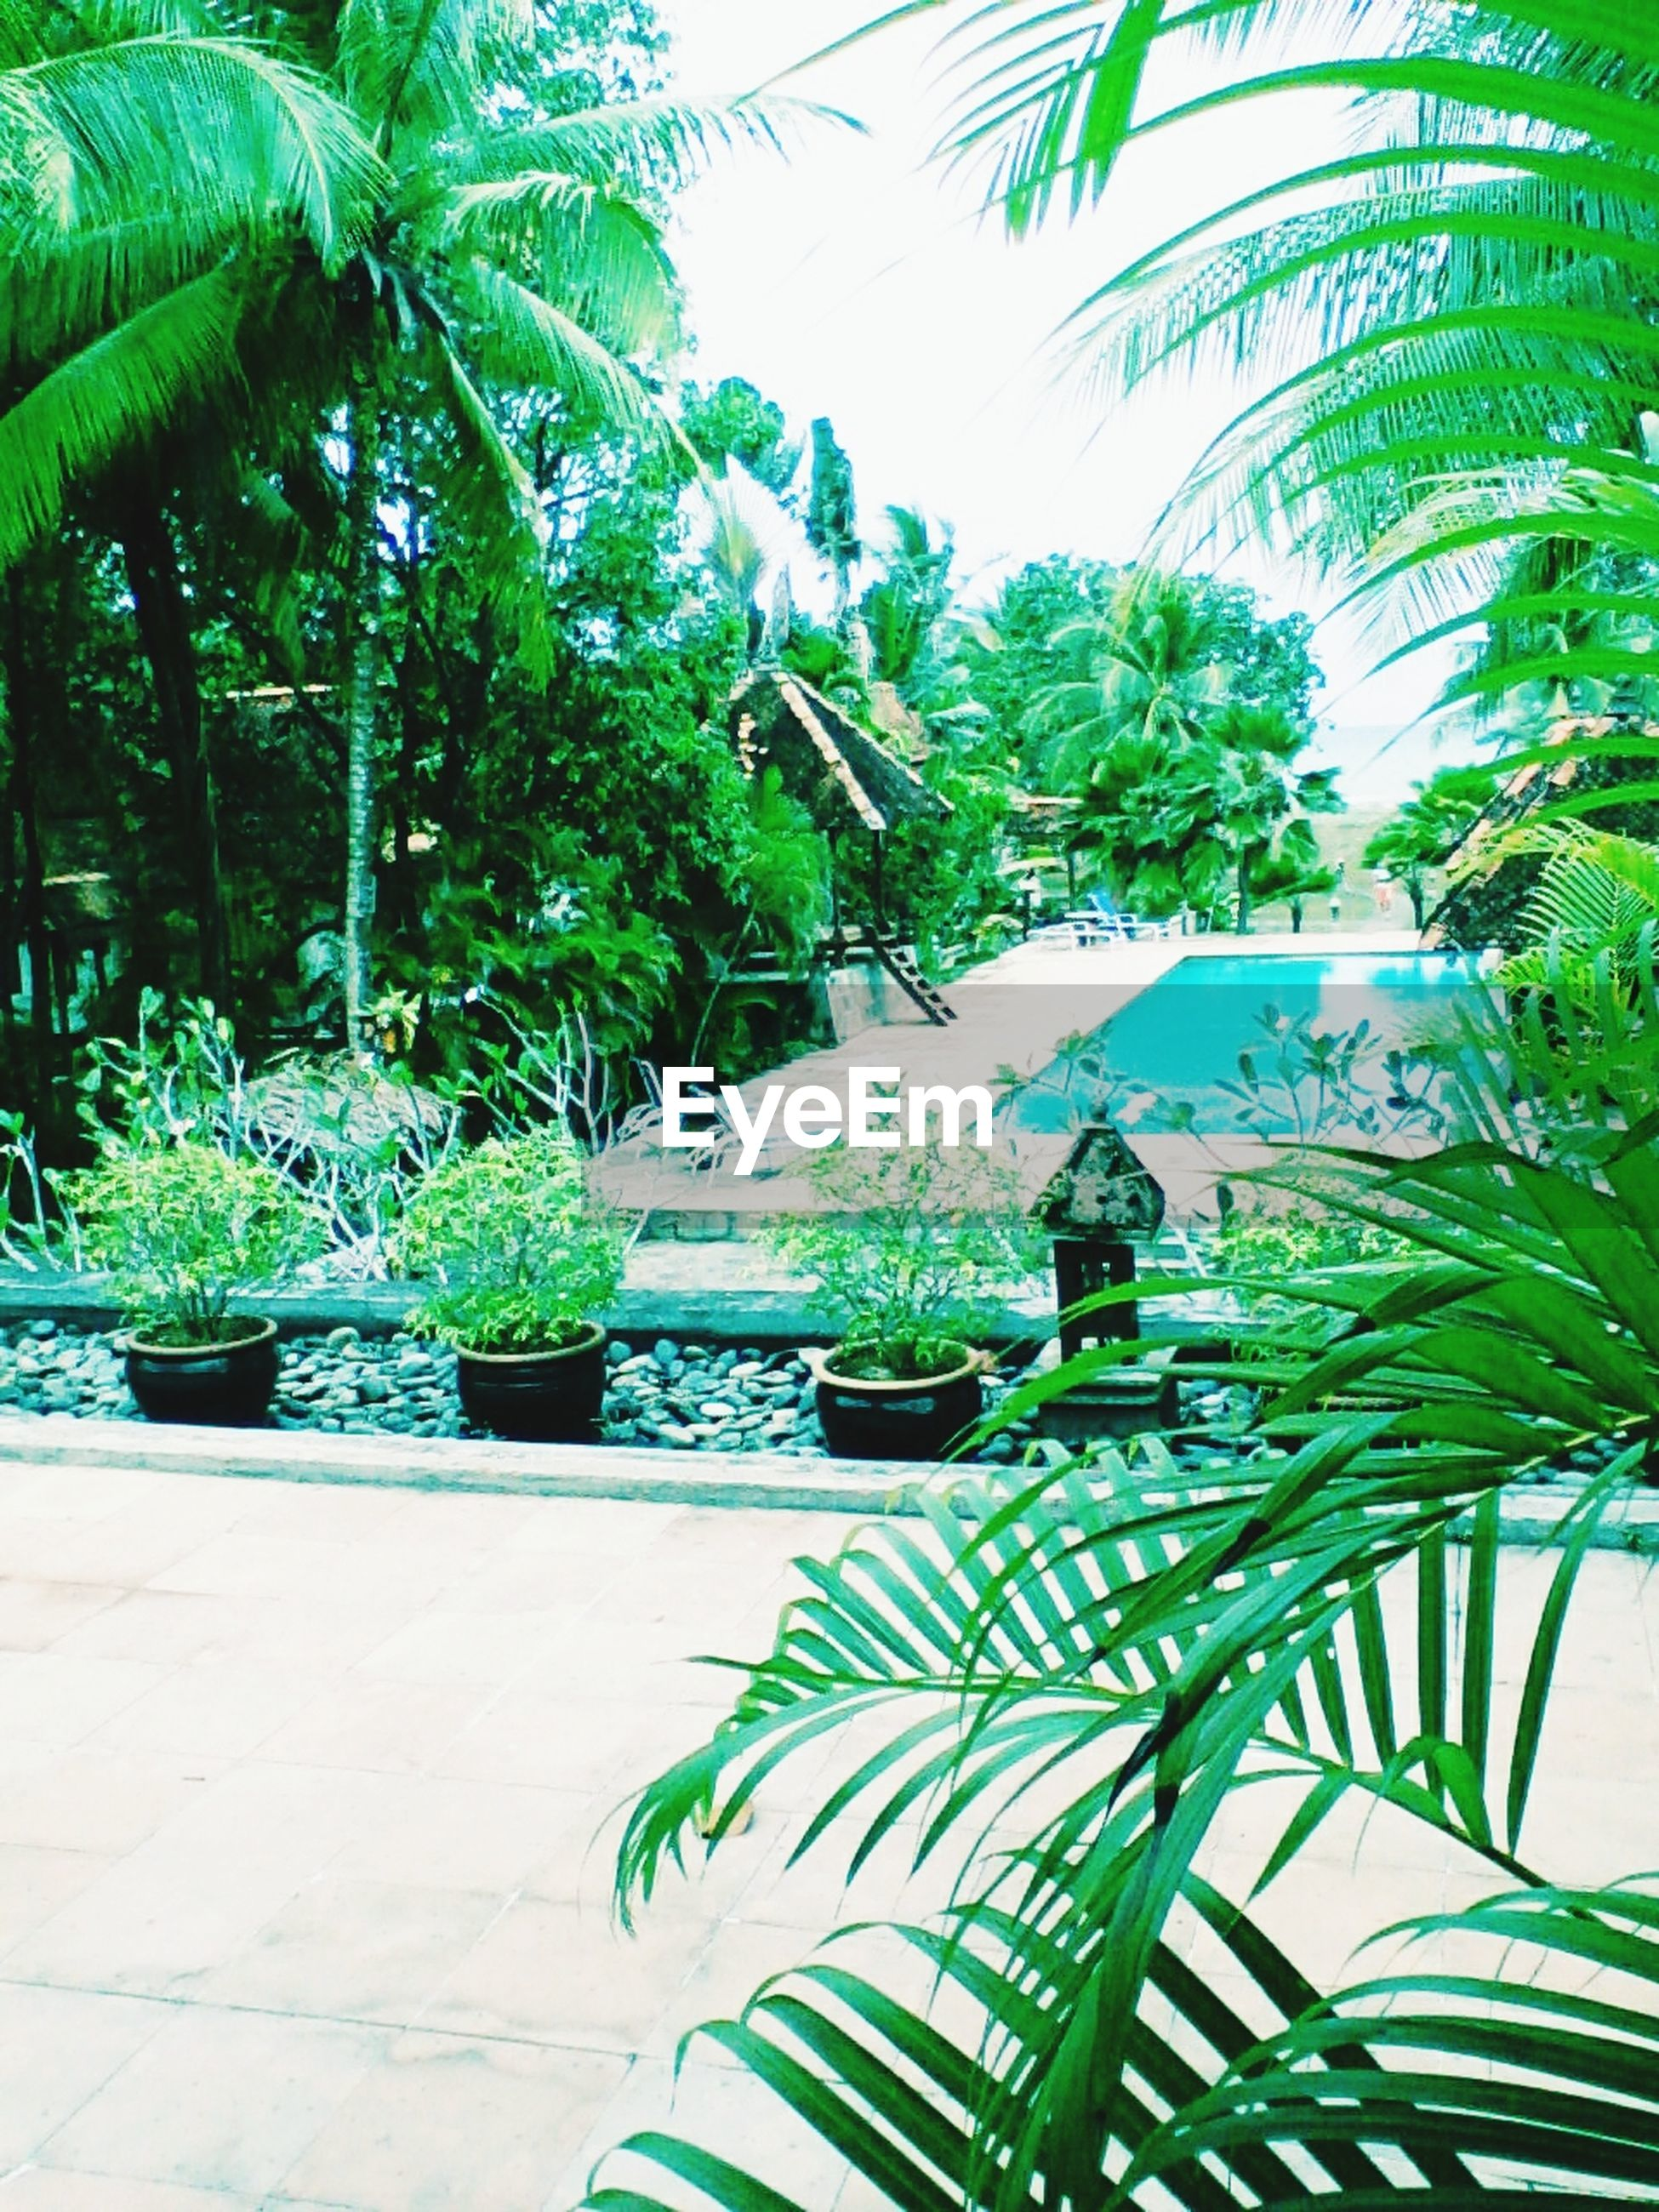 palm tree, tree, growth, green color, plant, leaf, built structure, potted plant, building exterior, architecture, nature, tropical climate, day, formal garden, green, lush foliage, outdoors, no people, sunlight, water